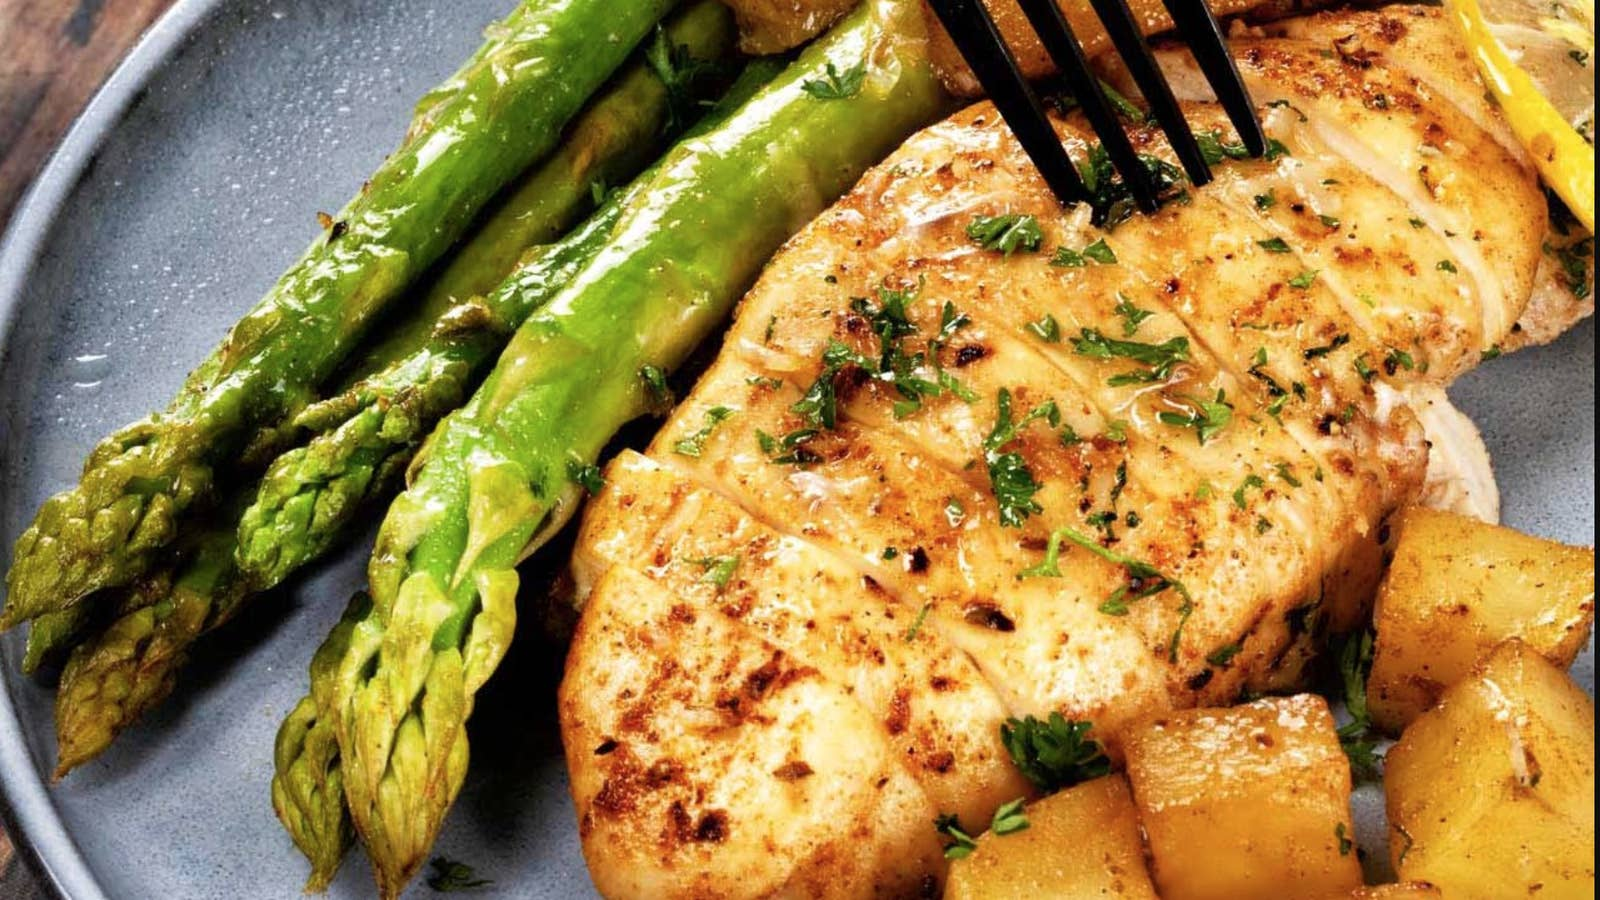 Healthy Oven Baked Chicken Breasts Recipe